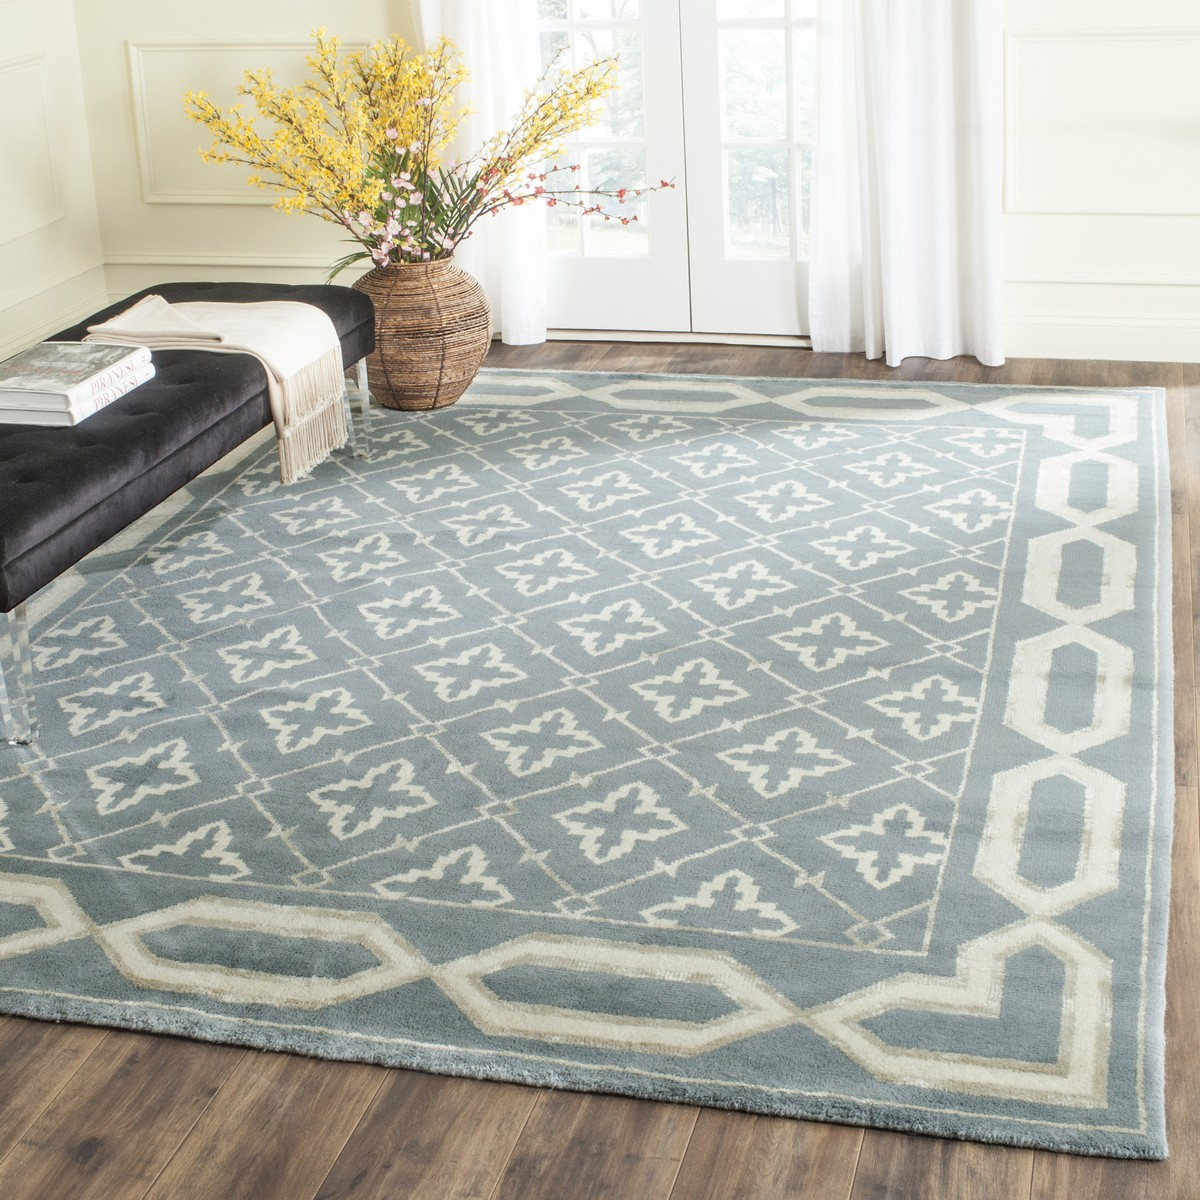 Rug Mos163a Mosaic Area Rugs By Safavieh